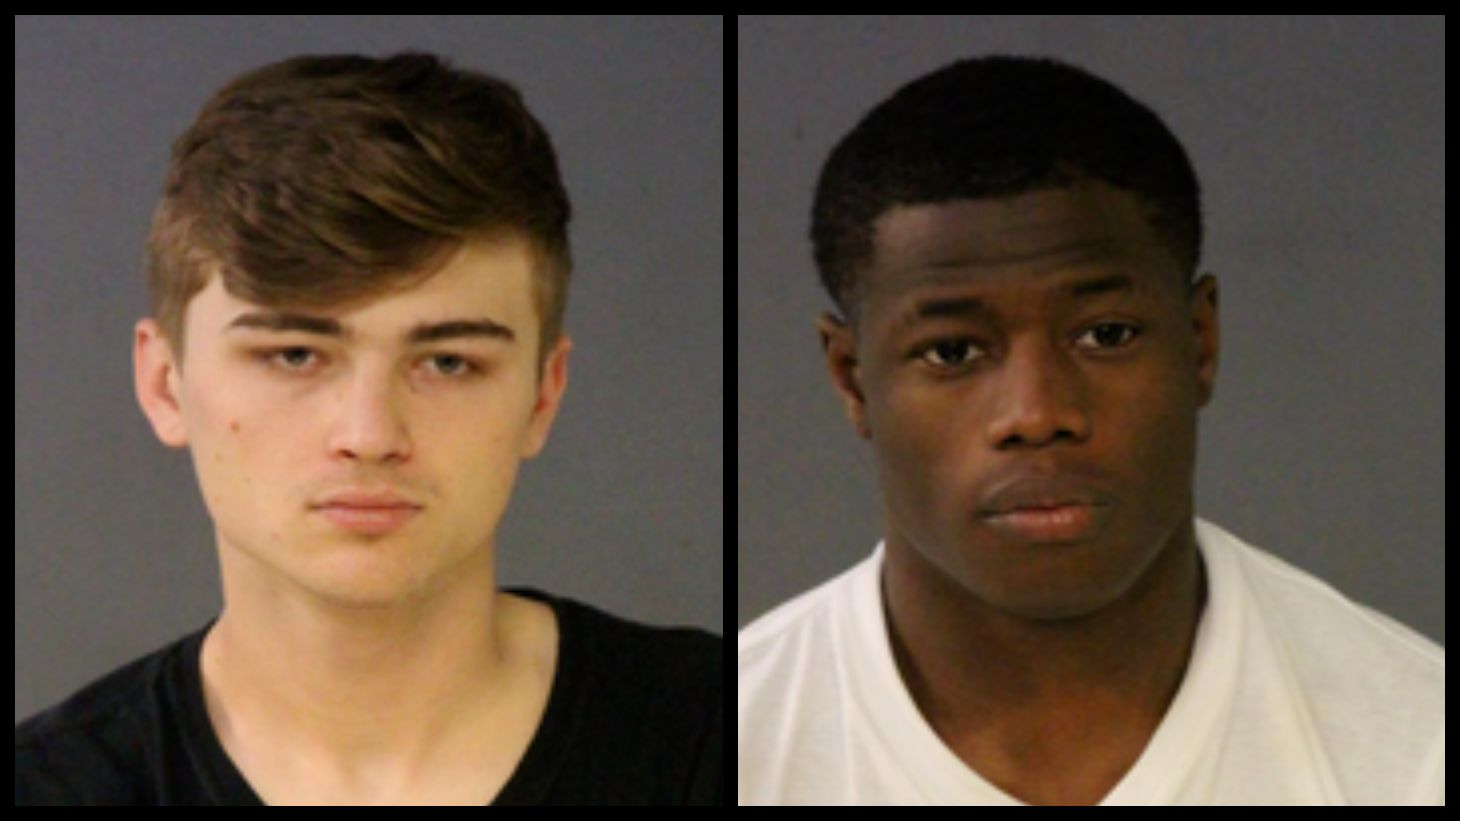 Police arrested 18 year old Chase Turner (left) and 19 year old Chordae Spearman (right) in connection with a shooting on the Interstate July 11